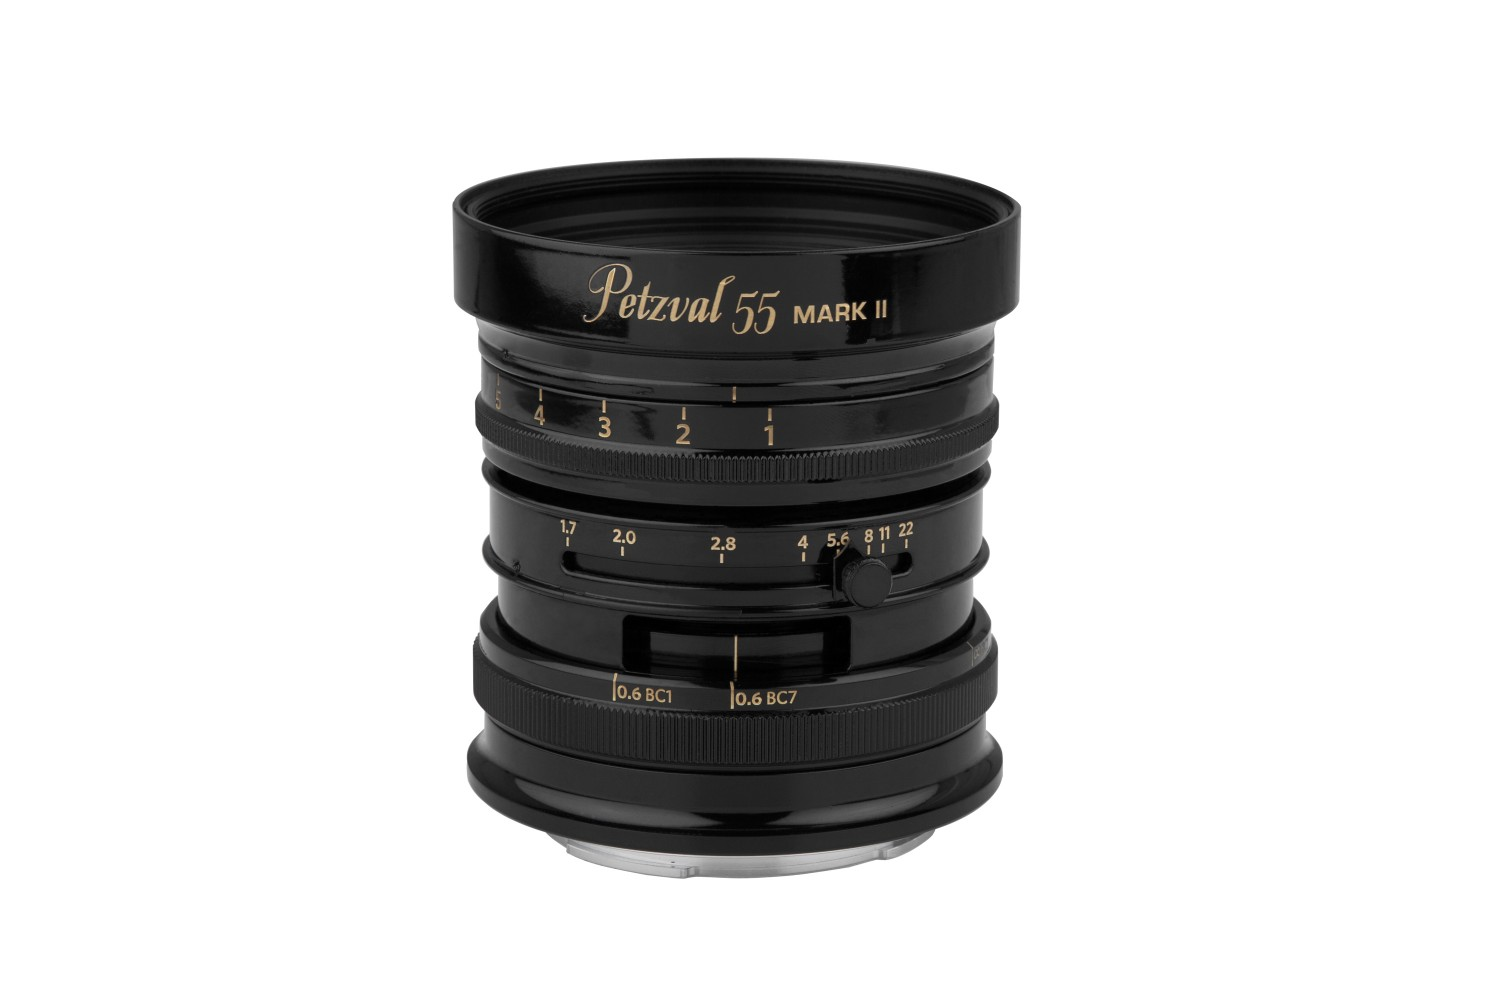 Petzval 55 mm f/1.7 Lens for Full-frame Mirrorless Cameras